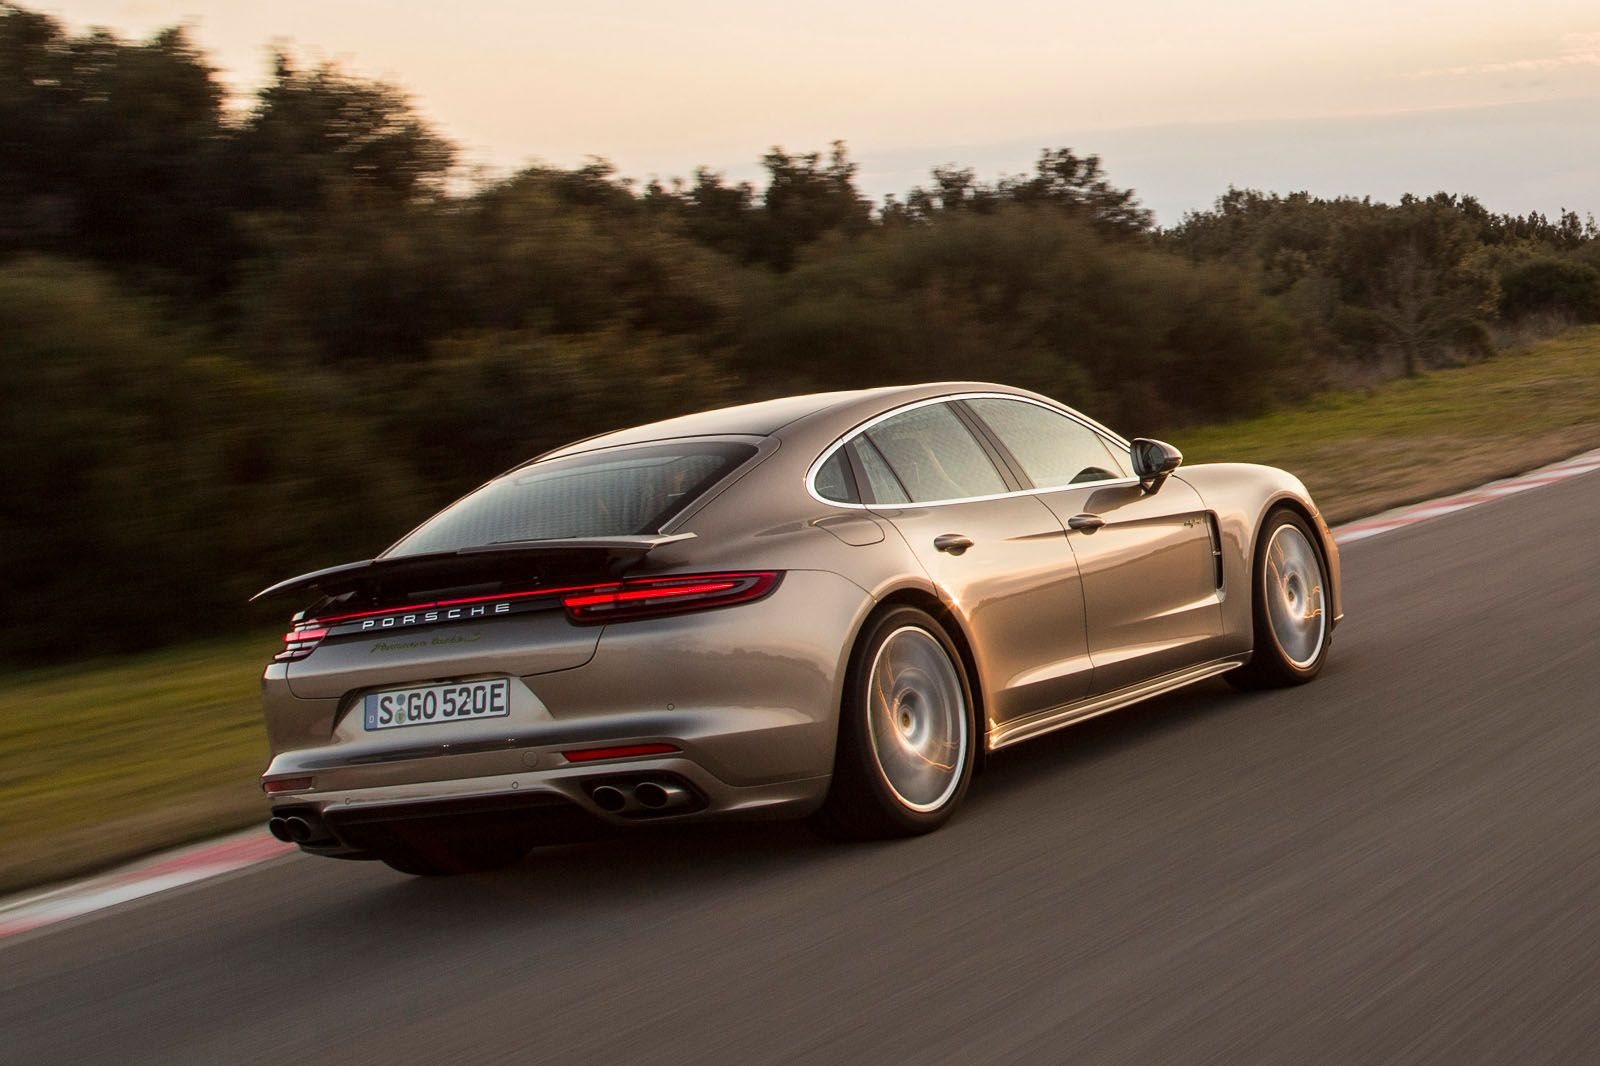 2017 Porsche Panamera Turbo S E Hybrid Revealed